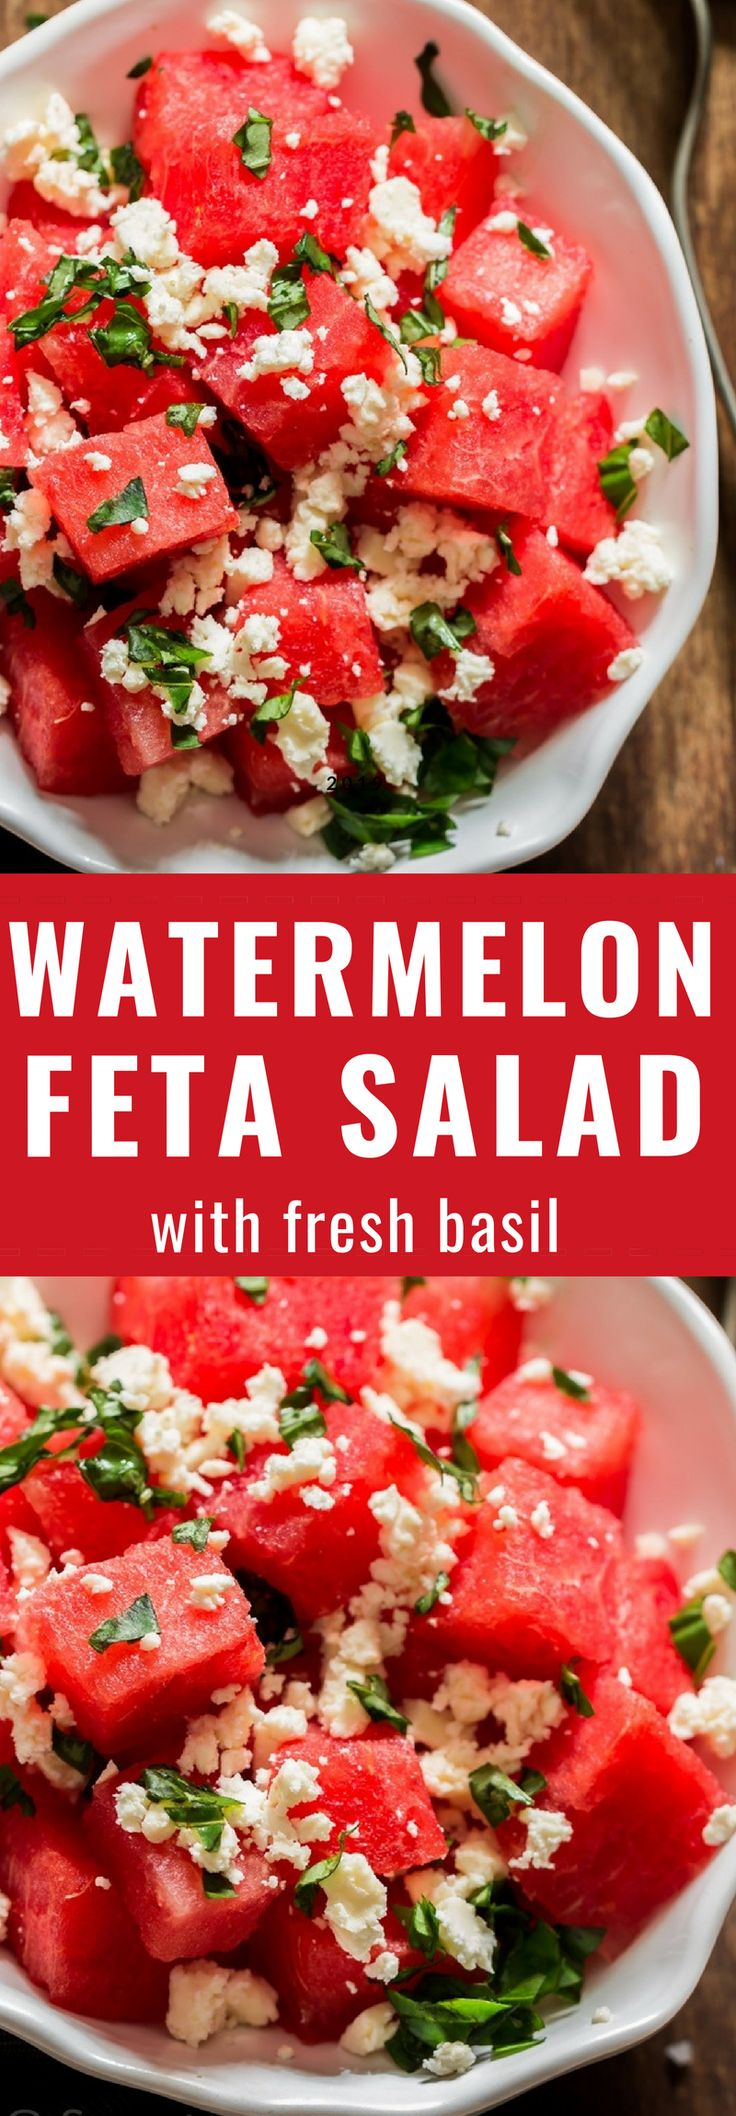 14719f6b91055349c98a51b0c4b6e16d Salty sweet and refreshing watermelon feta salad iswhat you should be serving fo...